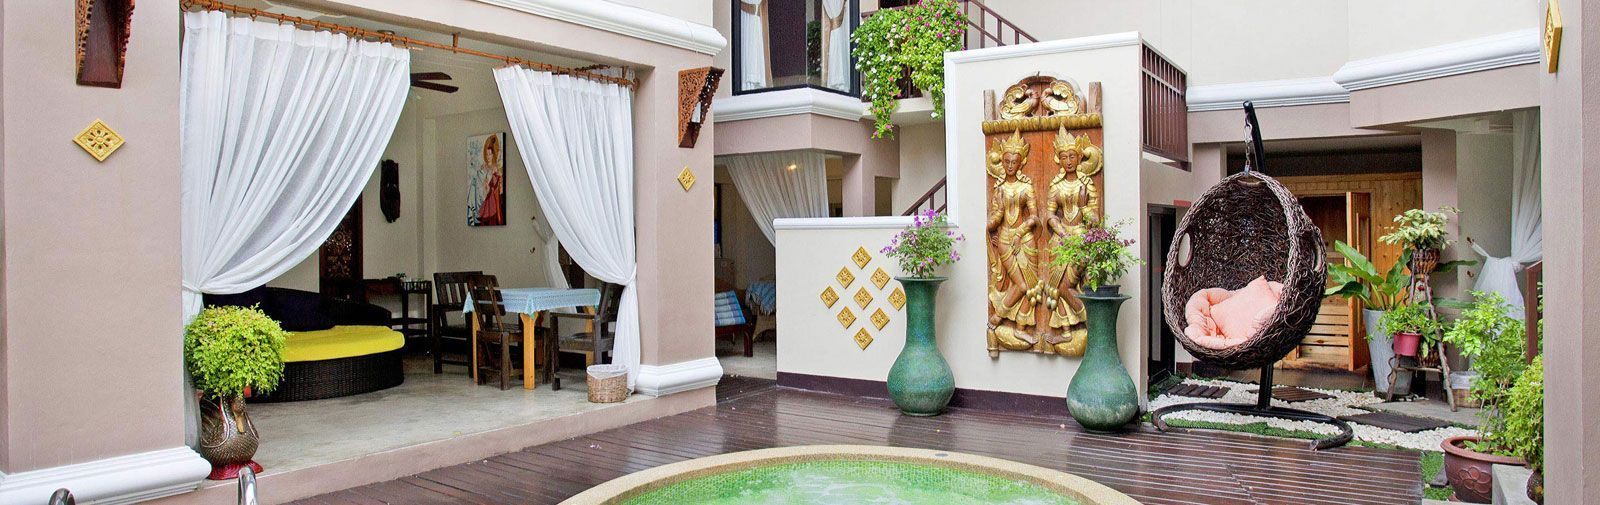 Luxury holiday villa for rent in Jomtien Pattaya